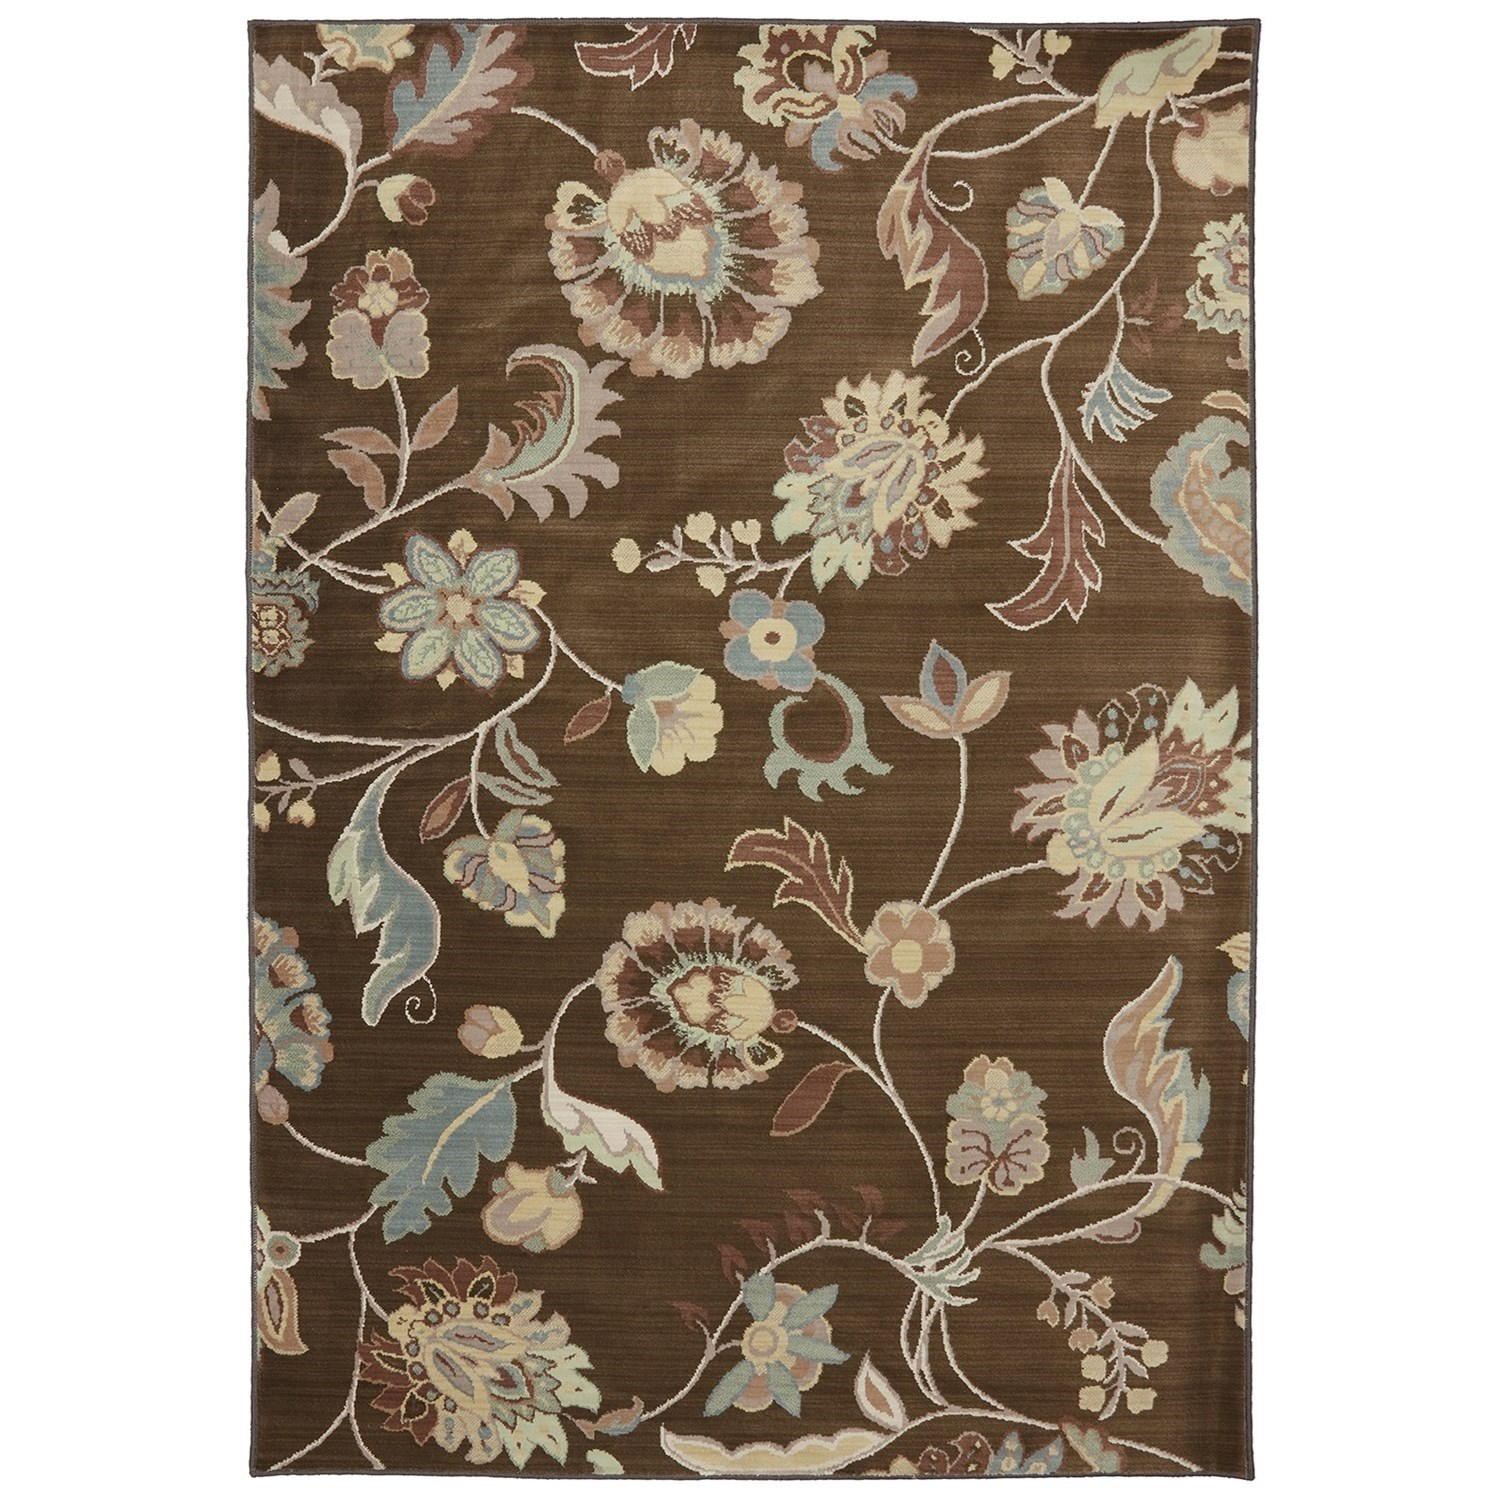 "Serenity 3' 6""x5' 6"" Sol Star Bison Area Rug by American Rug Craftsmen at Alison Craig Home Furnishings"